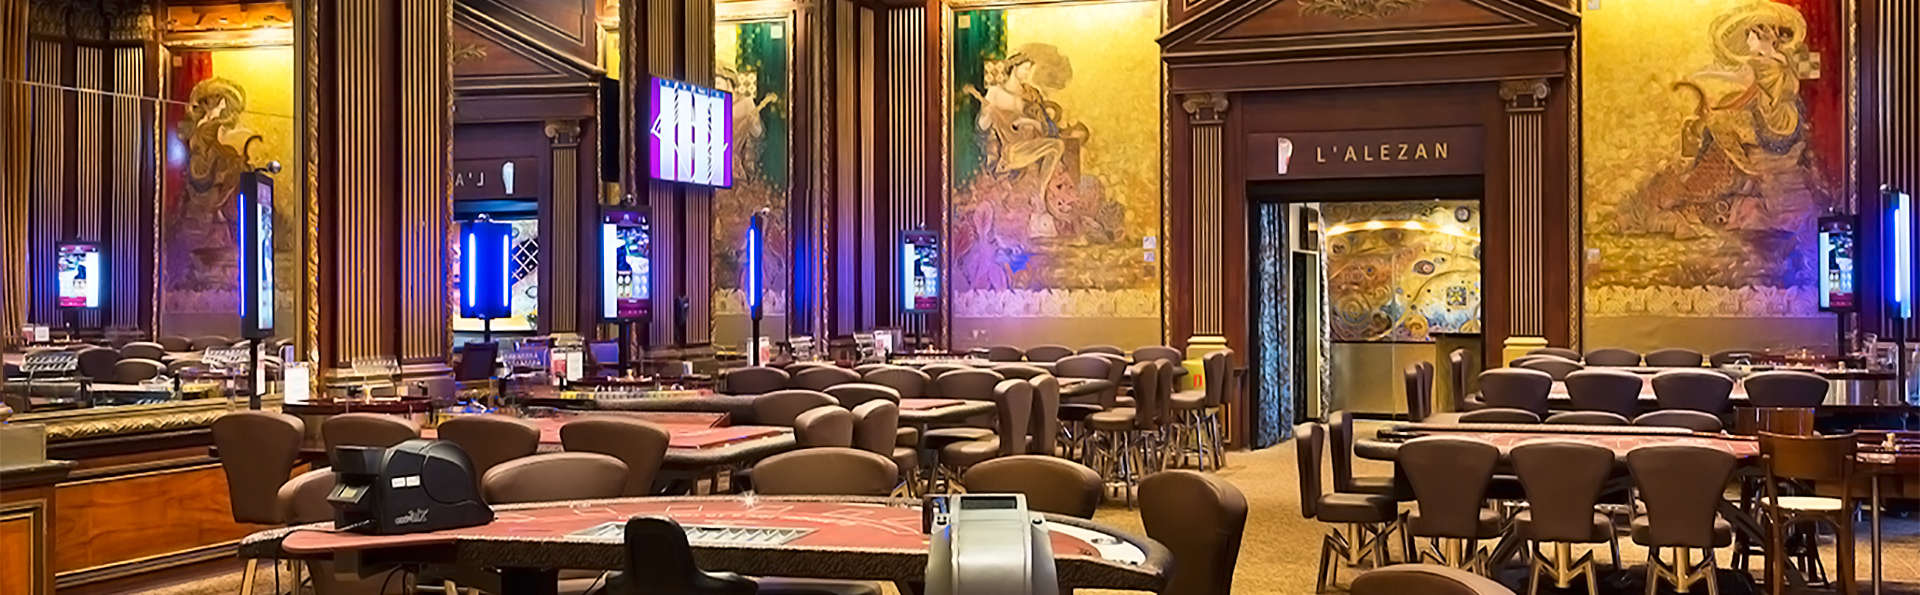 Casino barriere enghien spa